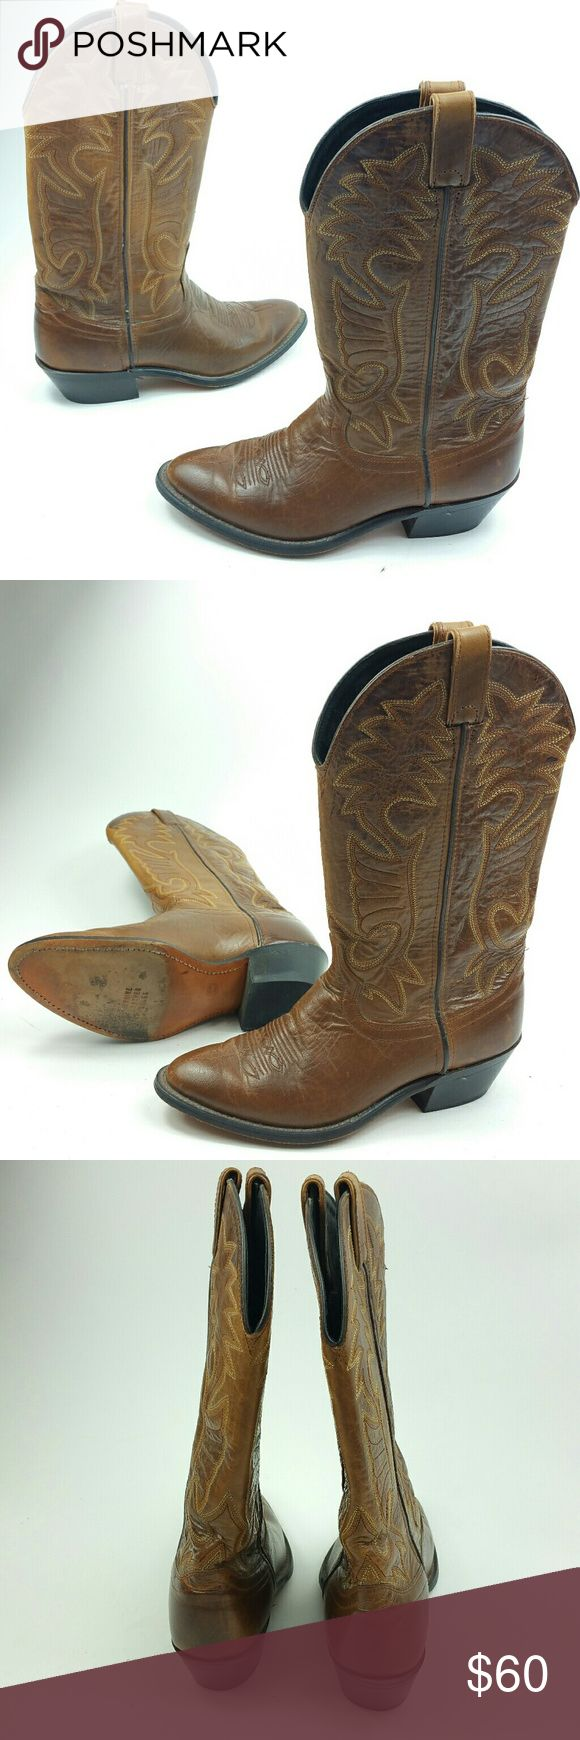 Laredo cowboy boots brown size 10 womens 7 mens Laredo cowboy boots brown size 10 womens 7 mens  Brown cowboy boots  Great shape Made in the USA  Size 7EE in mens which is a size 10 in womens  Measurements   Top to bottom 14in Sole top to bottom 10.5 Widest part of sole 4in Heel 2in Genuine buffalo sole Laredo Shoes